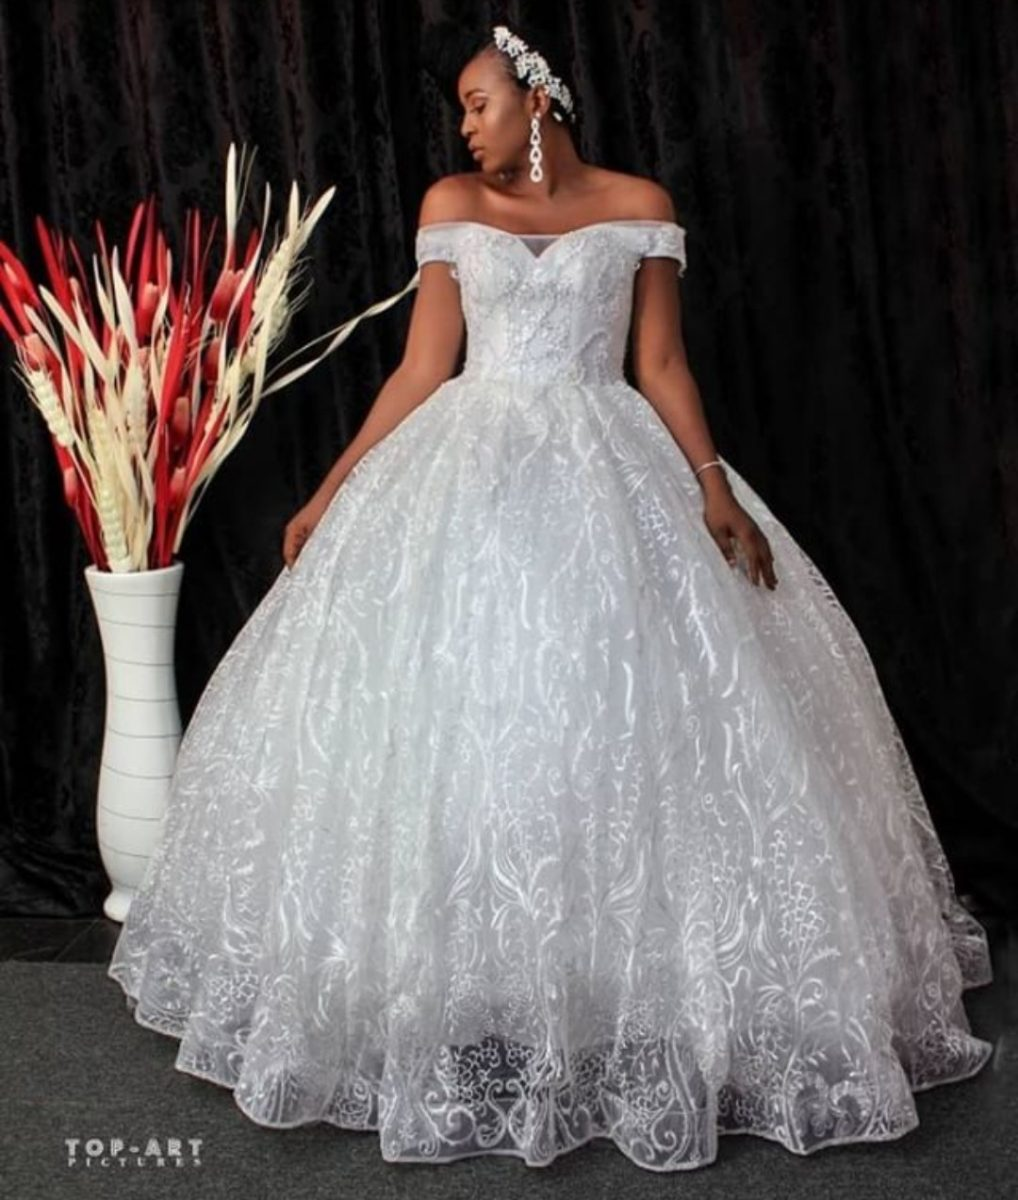 The Bride Gowns For Wedding Reception: Styles Of Bride Gowns For Reception-ANKARA FASHION